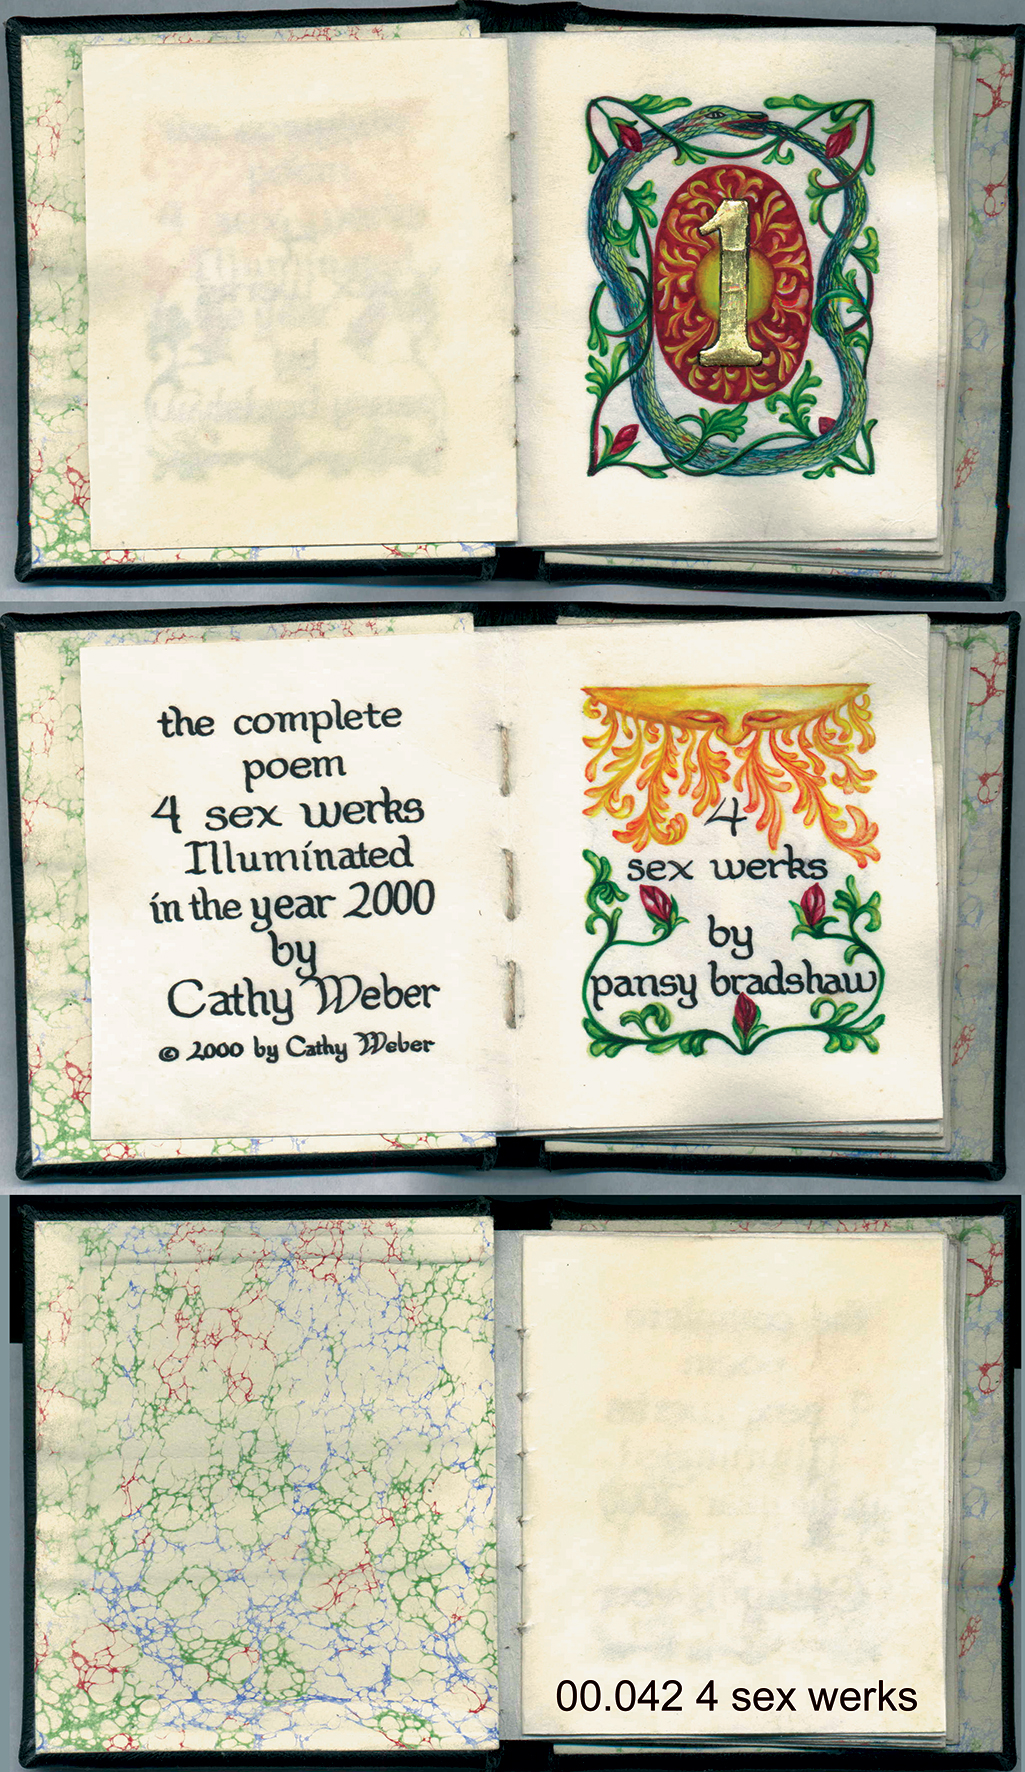 athy weber - art - painting - woman - book art - artist book - book - montana - watercolor - skin - pansy bradshaw - poetry - sex